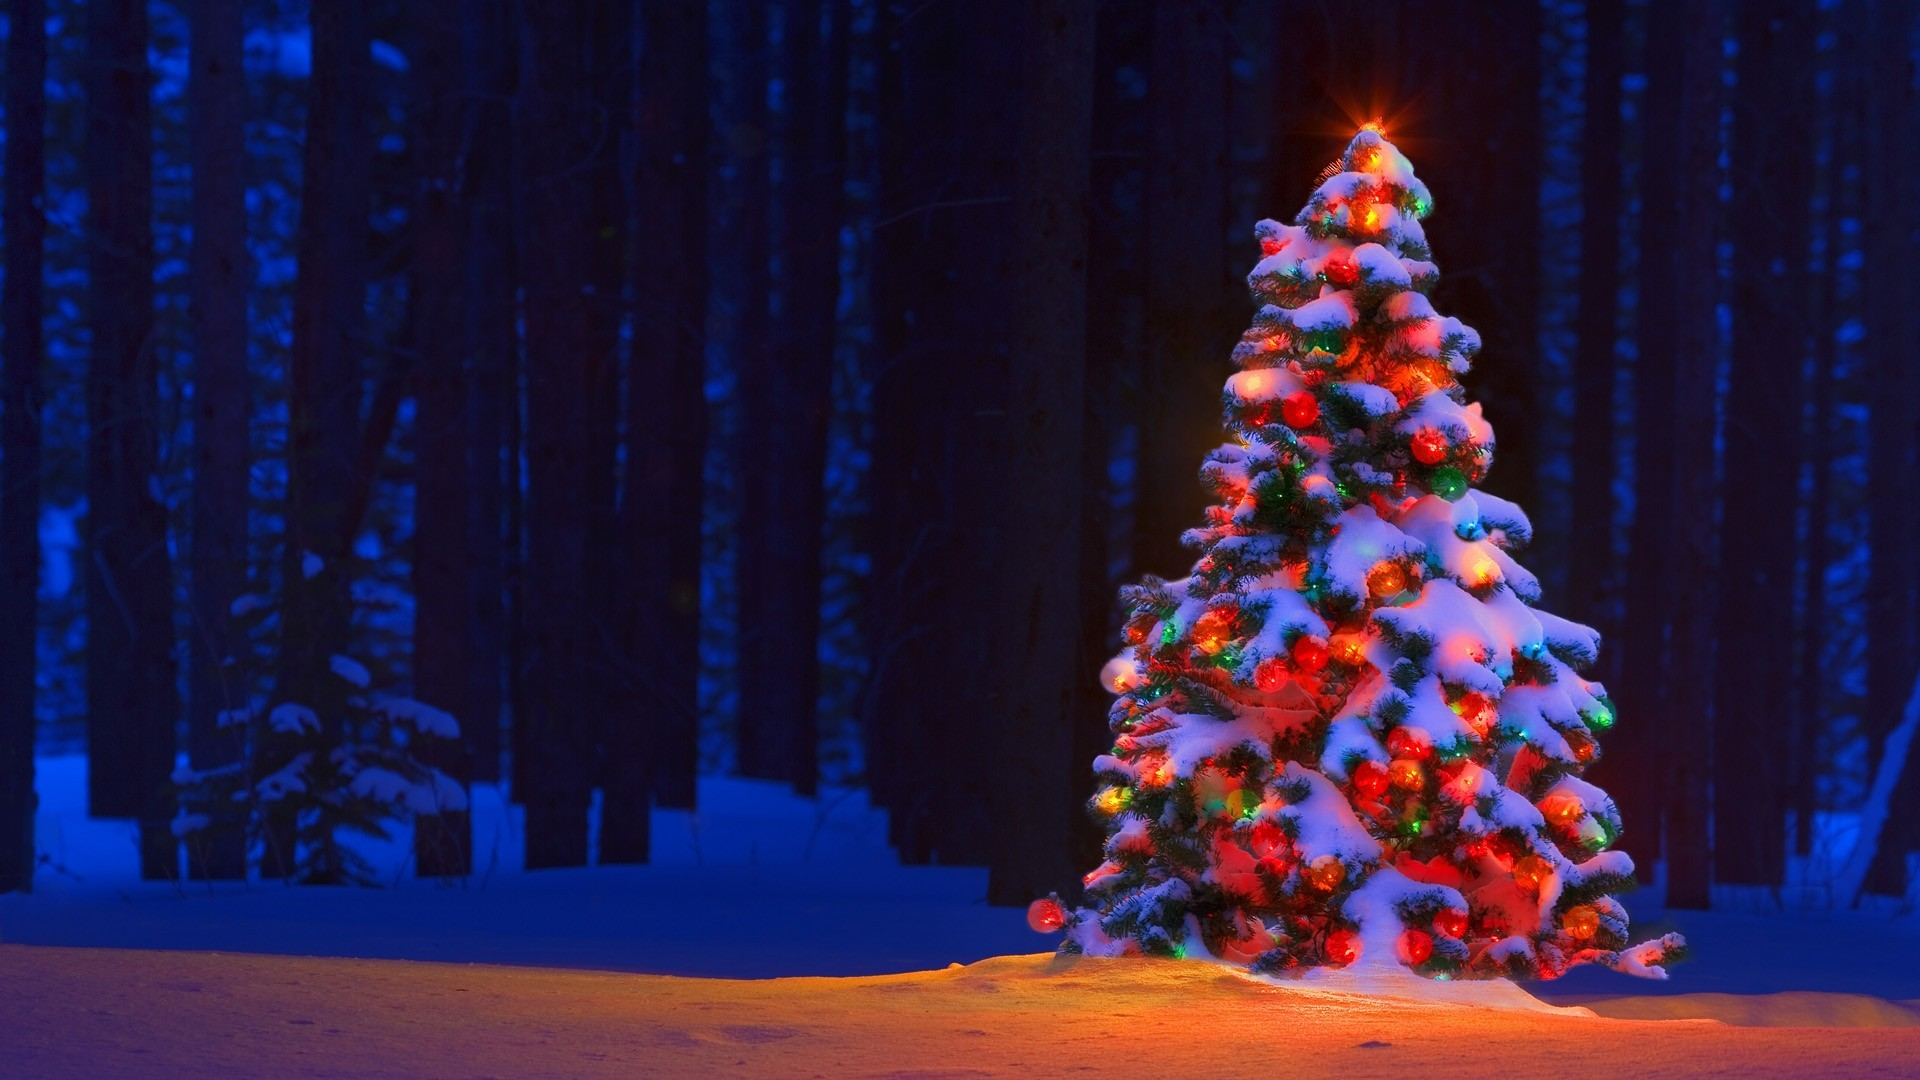 1920x1080 Christmas Lights Tree Desktop Backgrounds